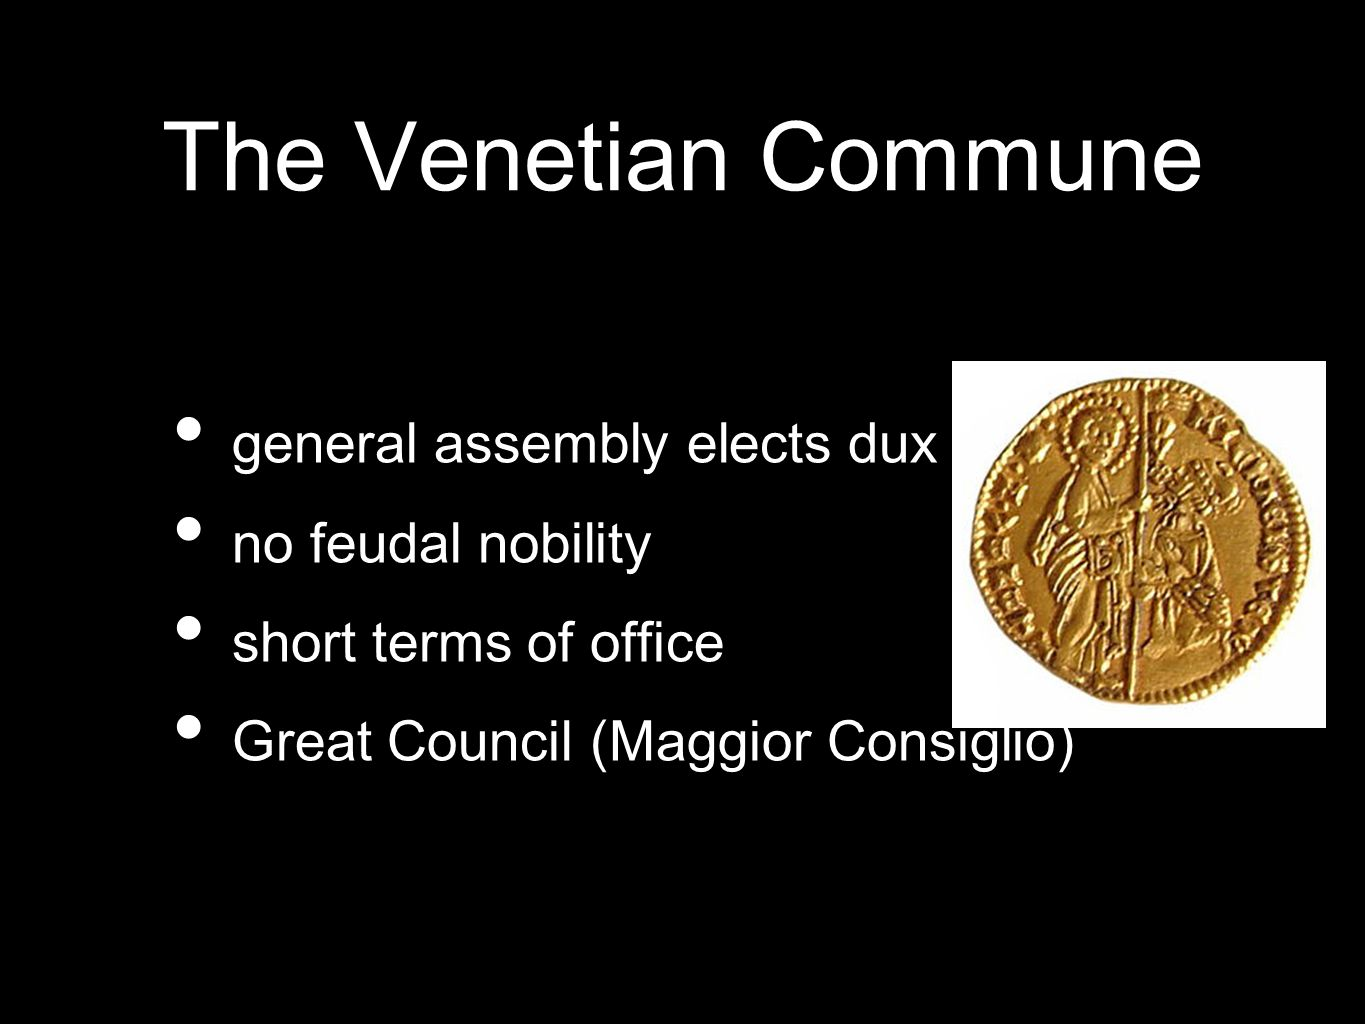 The Venetian Commune general assembly elects dux (doge) no feudal nobility short terms of office Great Council (Maggior Consiglio)